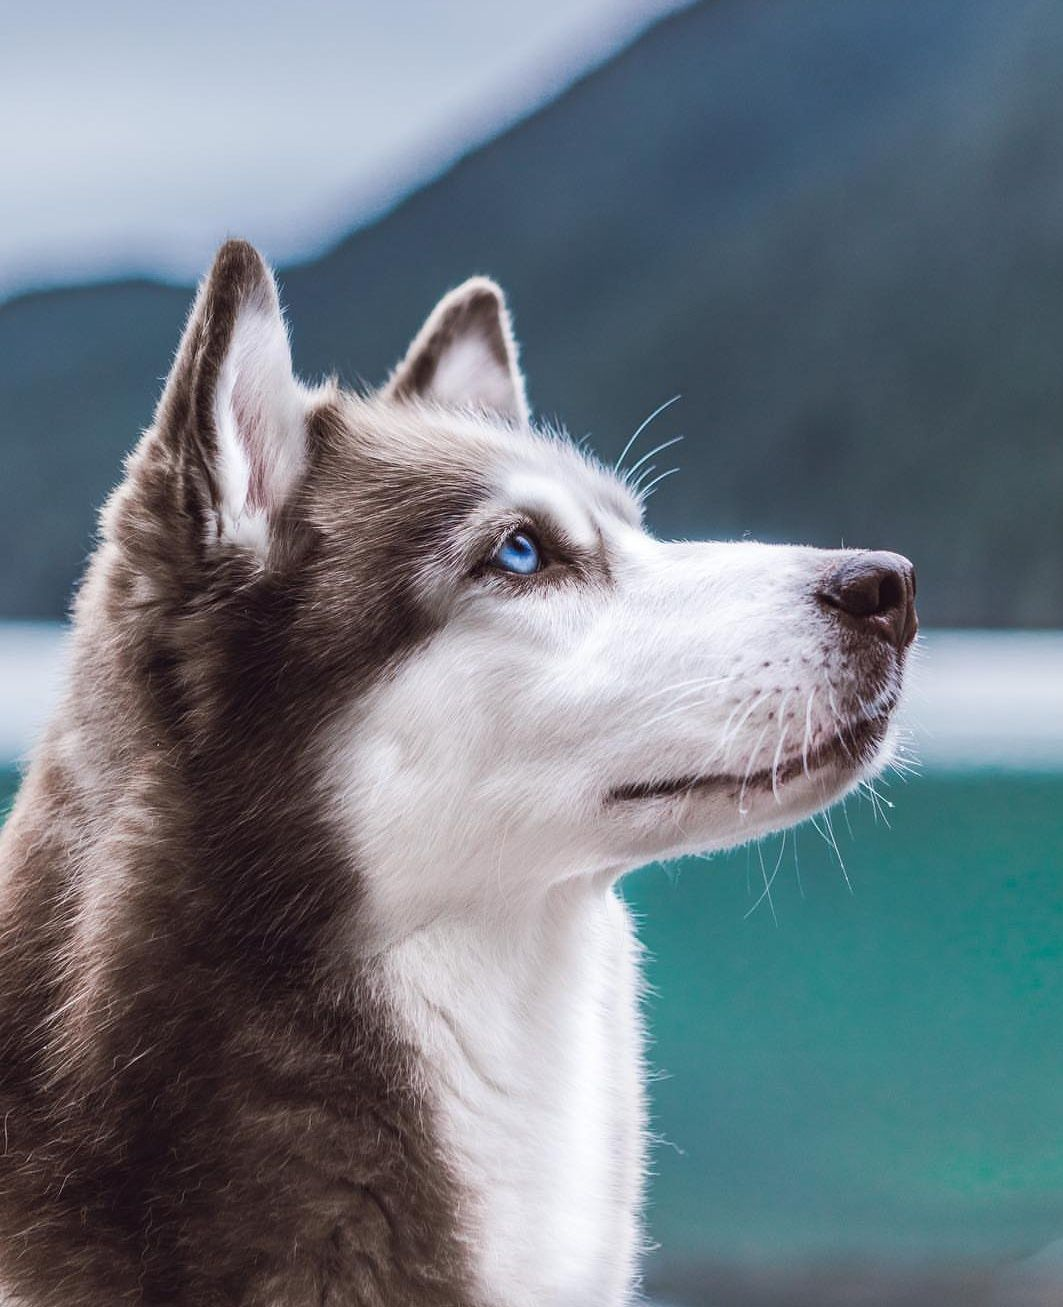 Aesthetic A N I M A L S Image By Faith Vongunten Siberian Husky